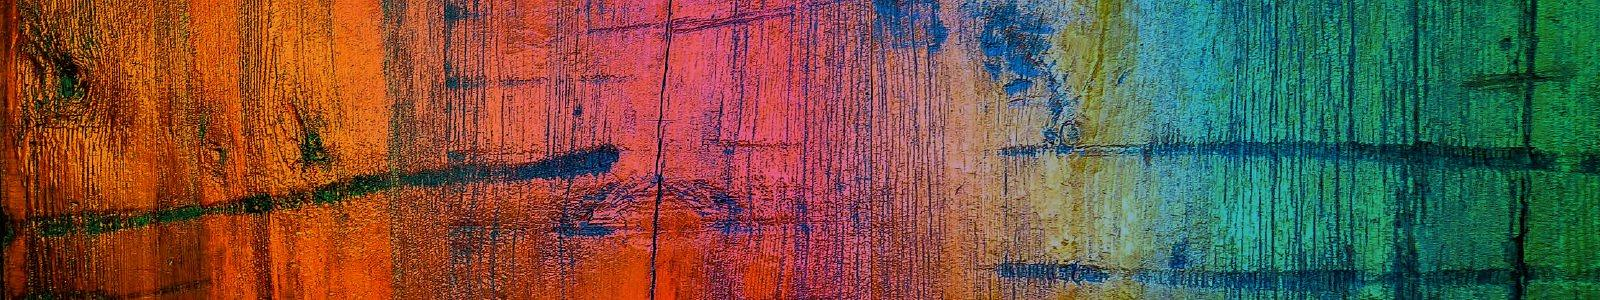 Multicoloured wood grain